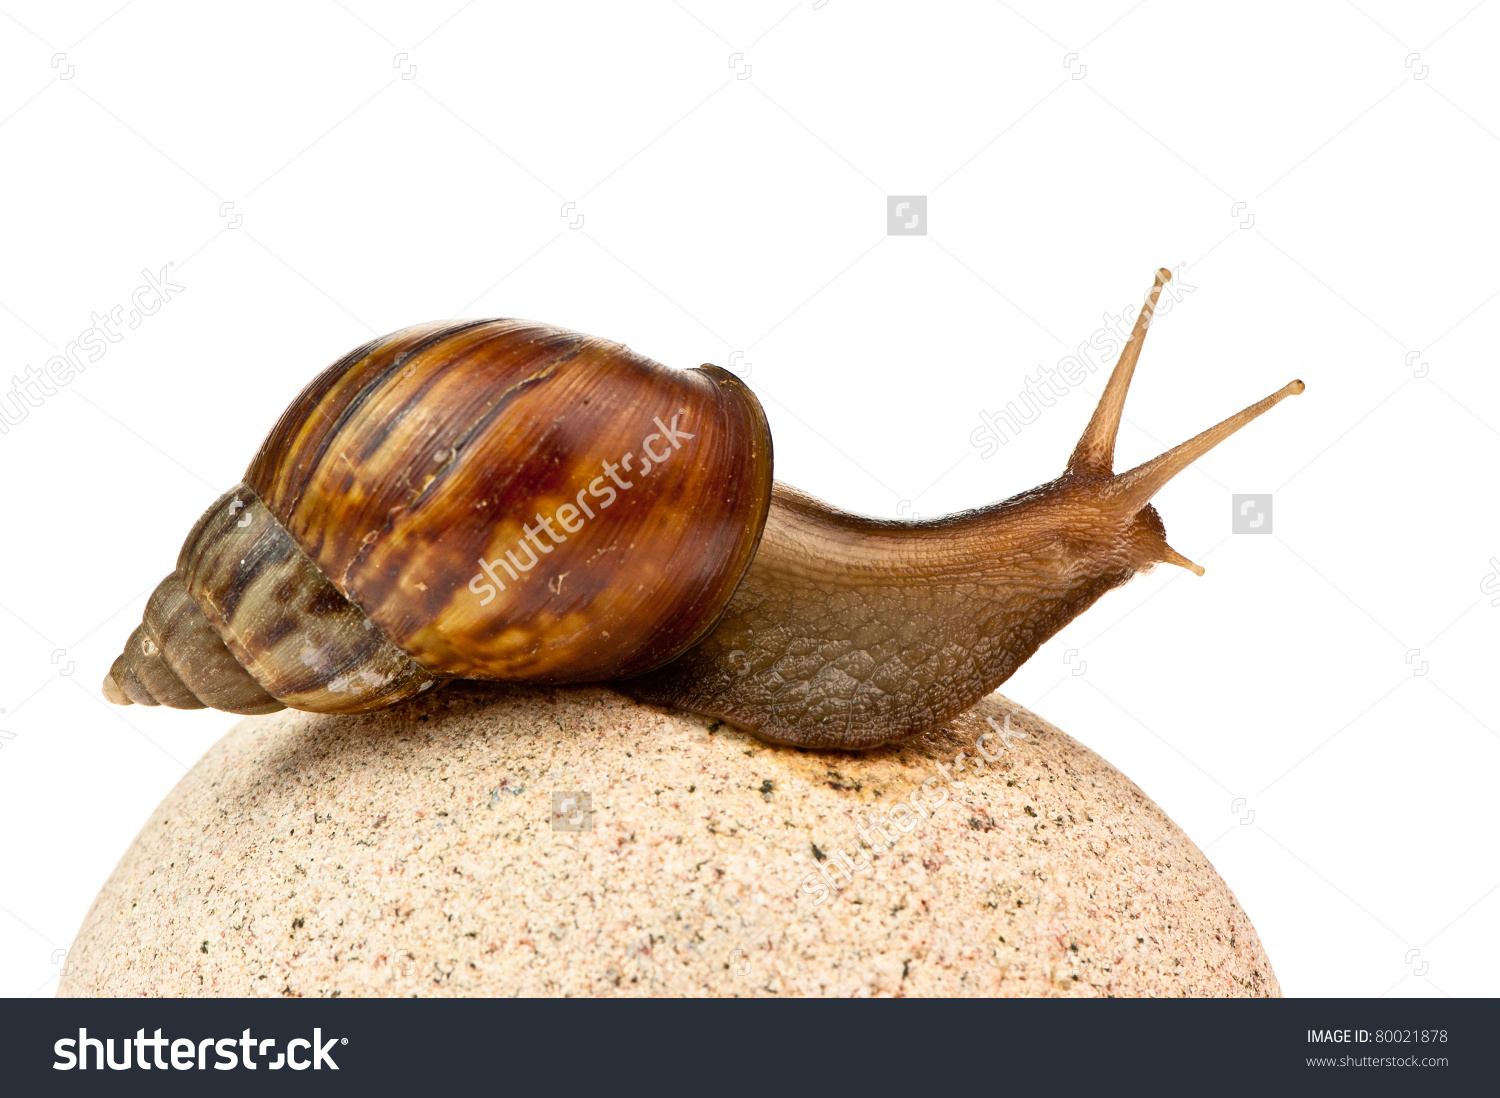 Achatina Fulica Giant African Land Snail Stock Photo 80021878.